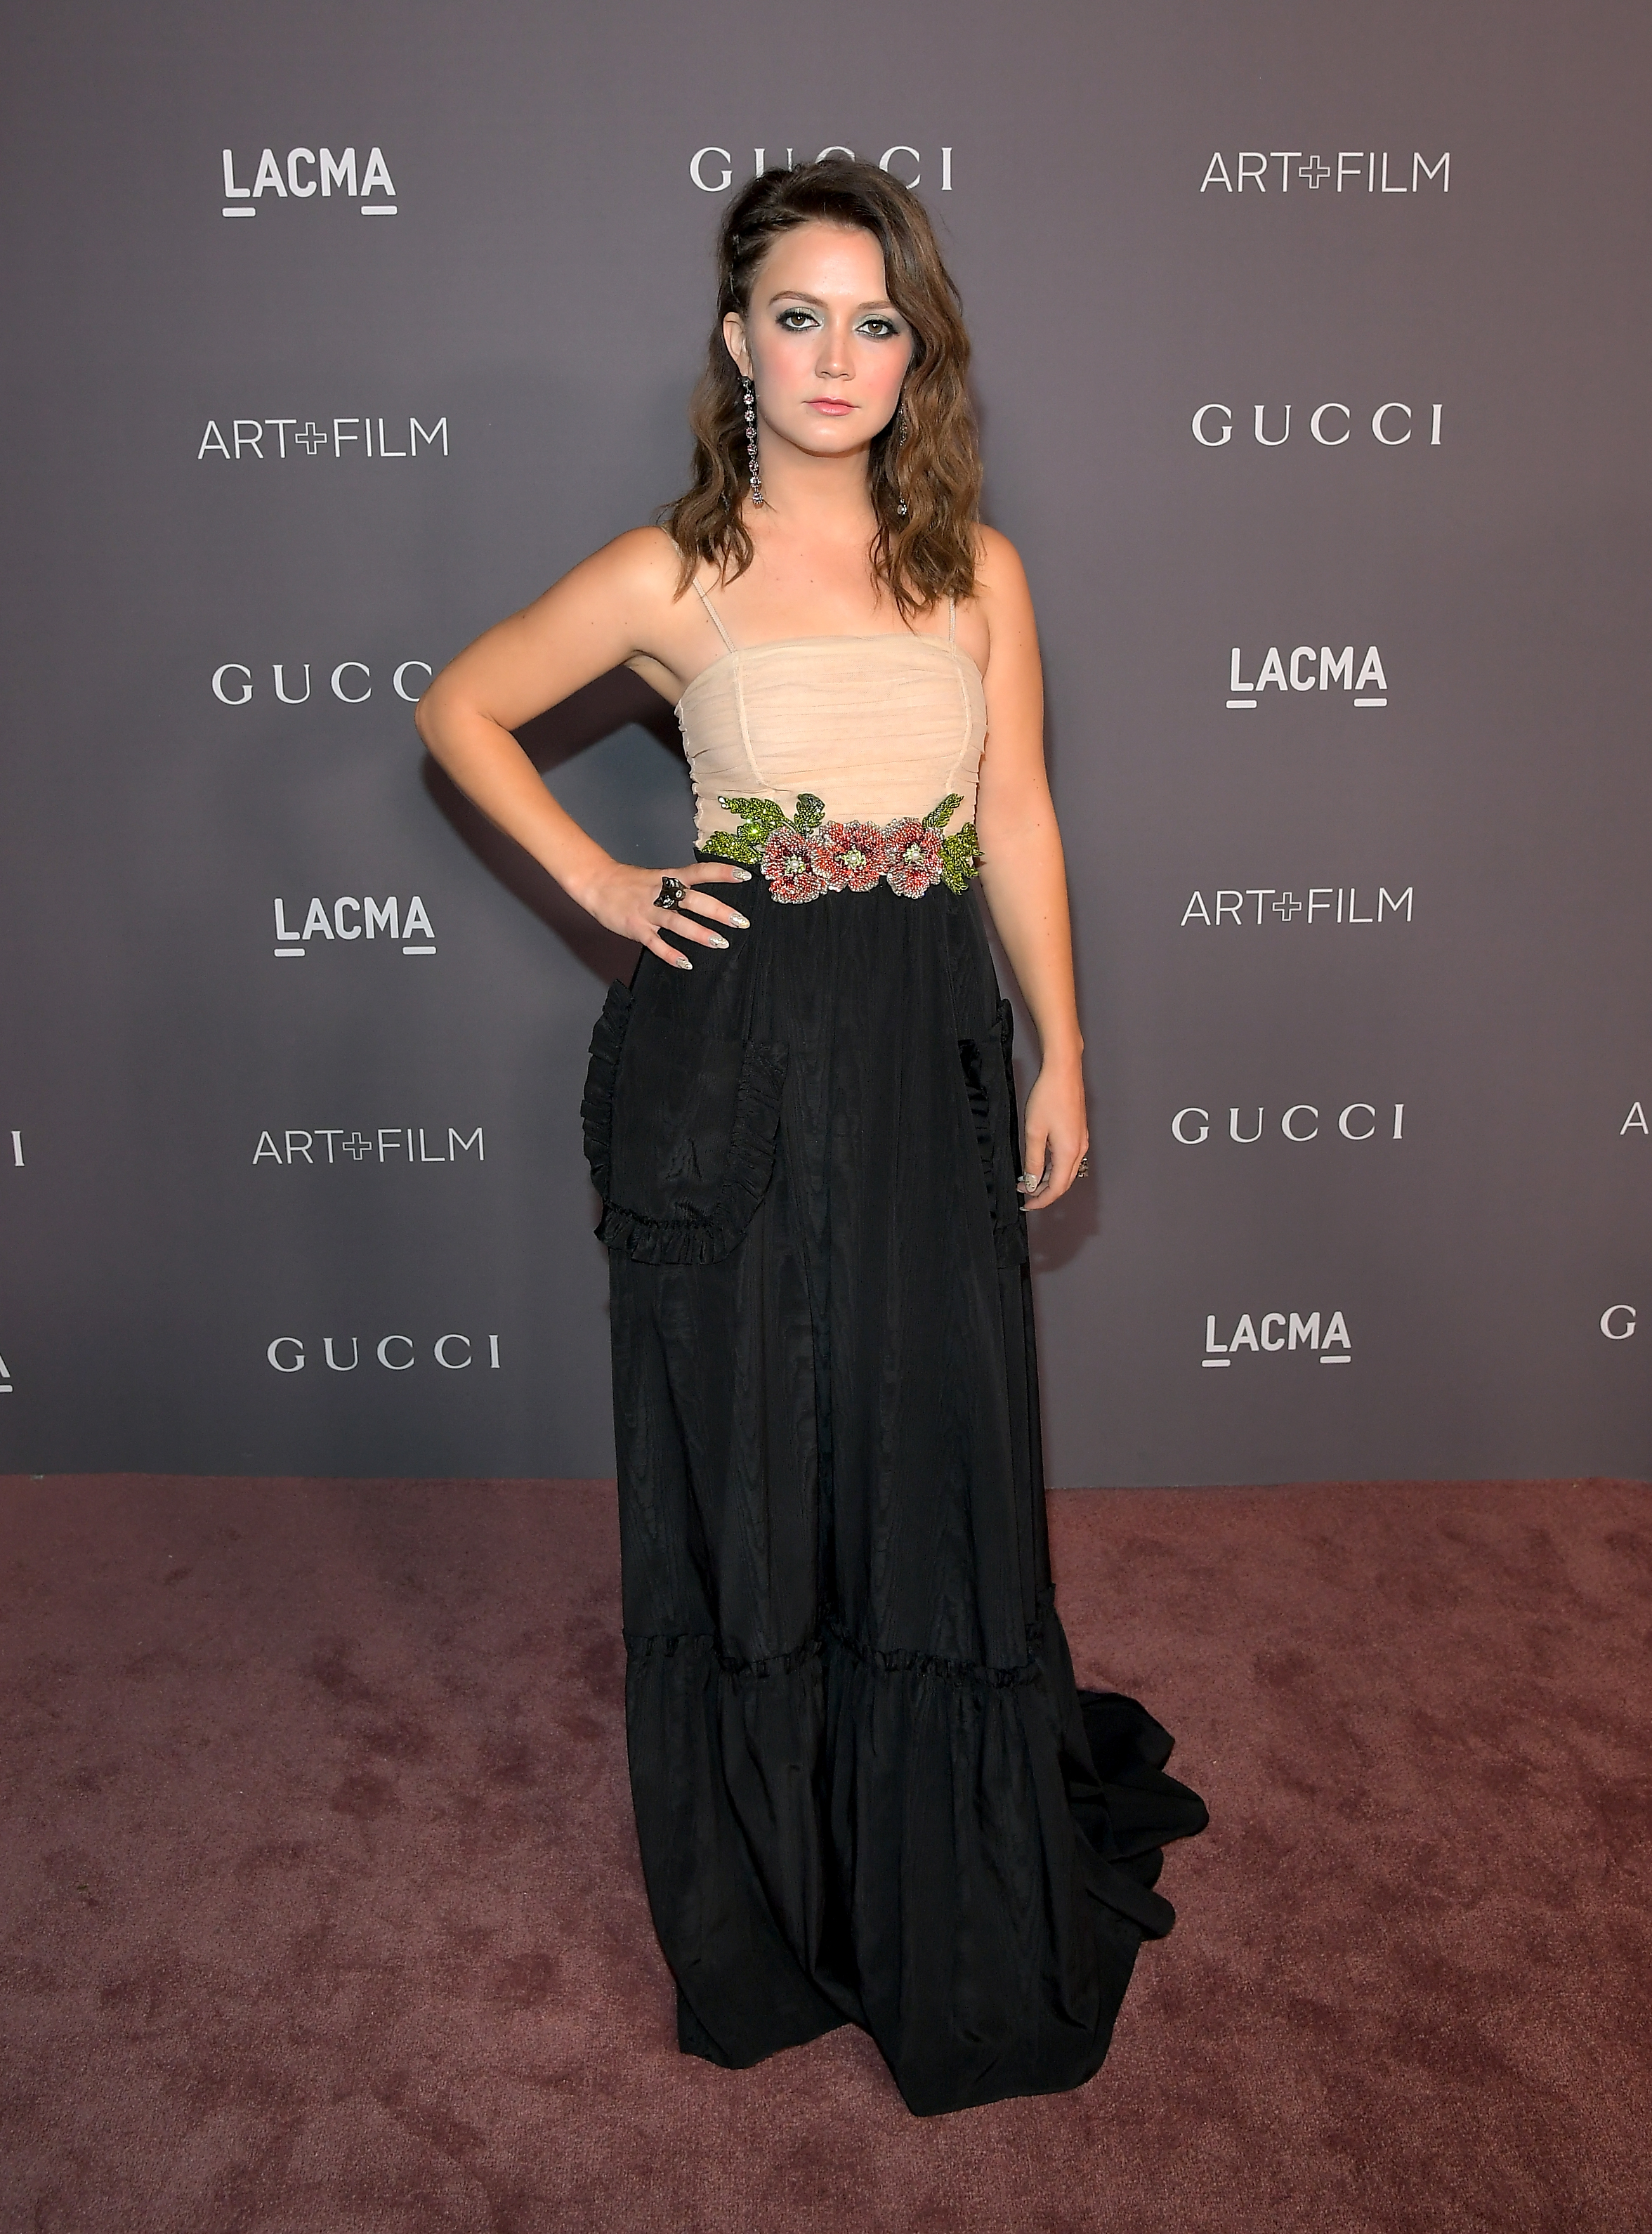 LOS ANGELES, CA - NOVEMBER 04: Actor Billie Lourd, wearing Gucci, attends the 2017 LACMA Art + Film Gala Honoring Mark Bradford and George Lucas presented by Gucci at LACMA on November 4, 2017 in Los Angeles, California. (Photo by Charley Gallay/Getty Images for LACMA)